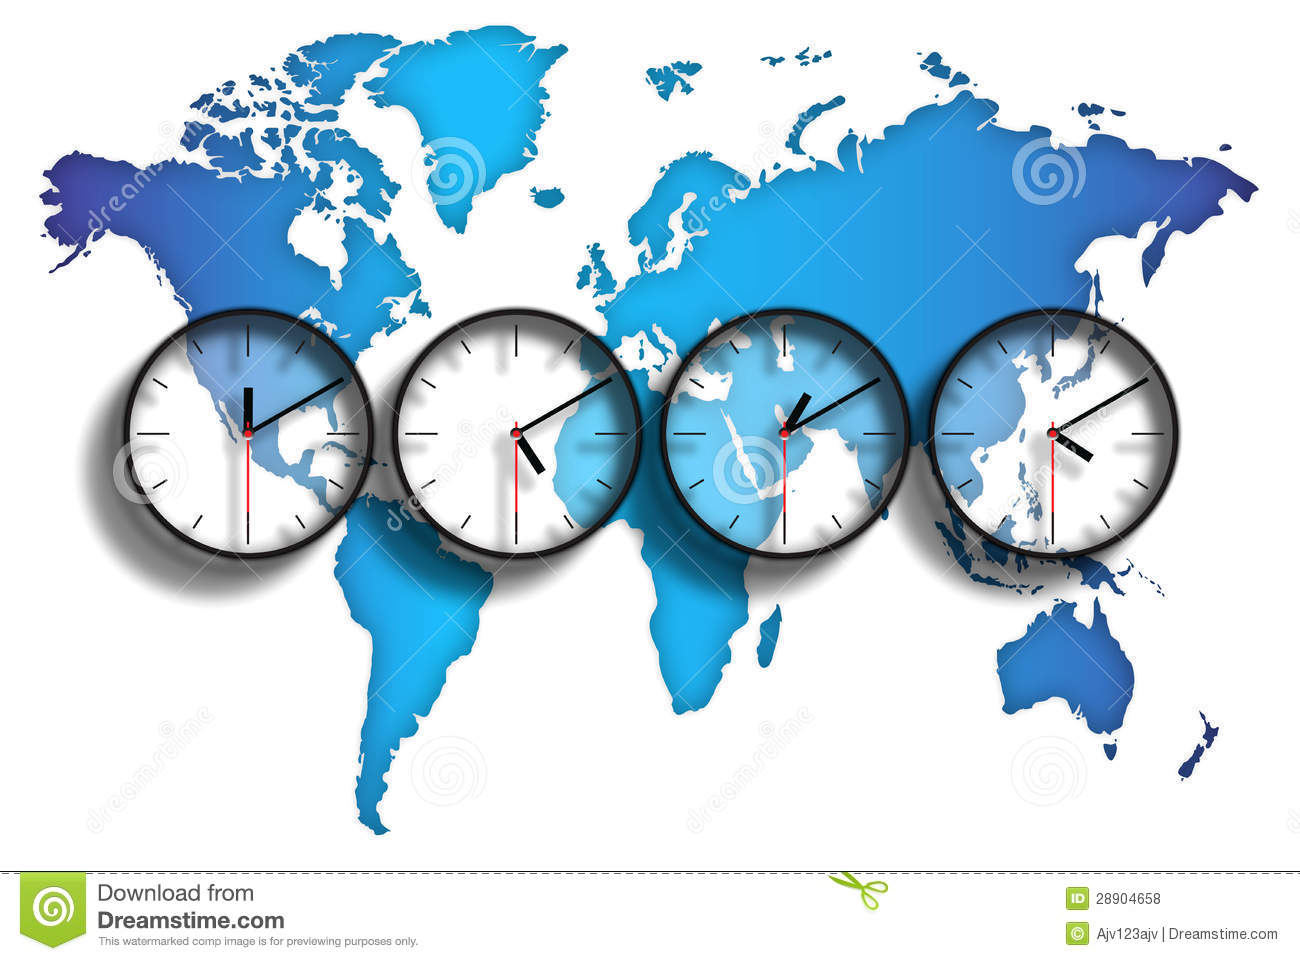 World map time zones stock illustration illustration of kingdoms world map time zones stock illustration illustration of kingdoms 28904658 gumiabroncs Images